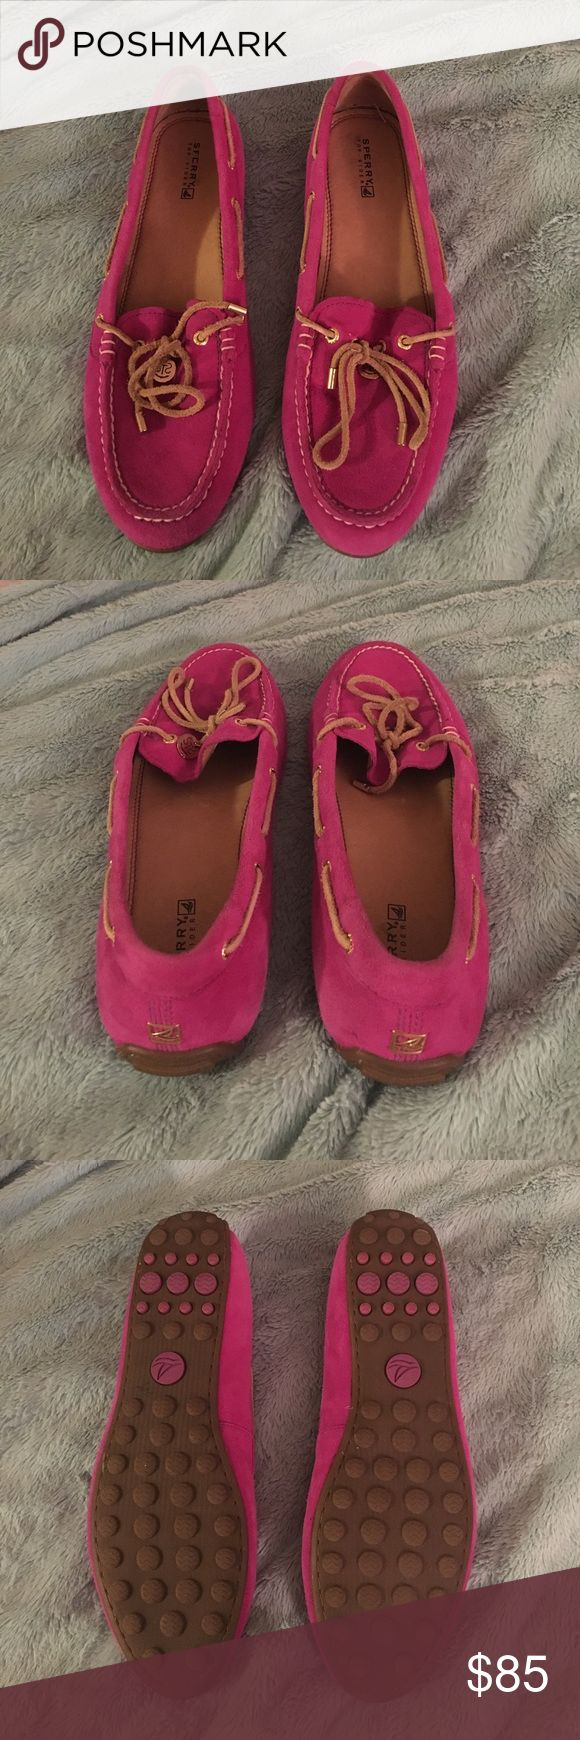 Pink Sperry Boat shoes Only worn once.. comfy and it great condition! No trades! Sperry Top-Sider Shoes Flats & Loafers